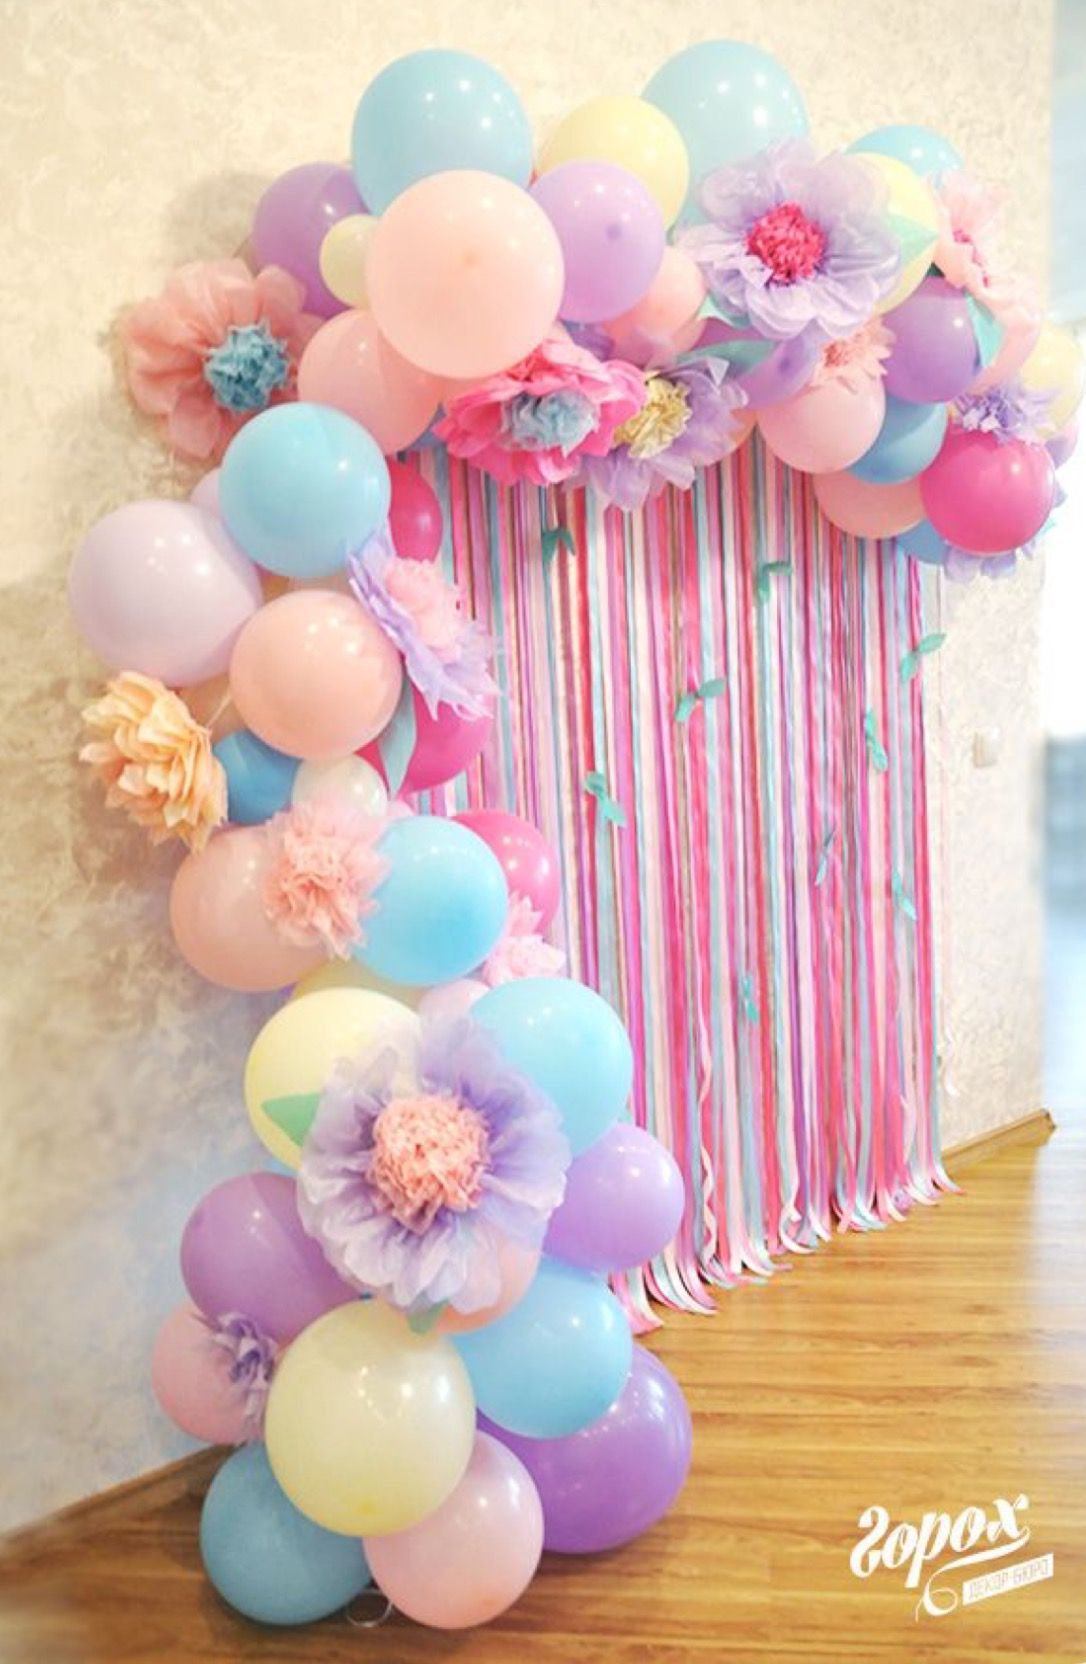 A Balloon Photo Backdrop I Love These Pastel Colours And The Tissue